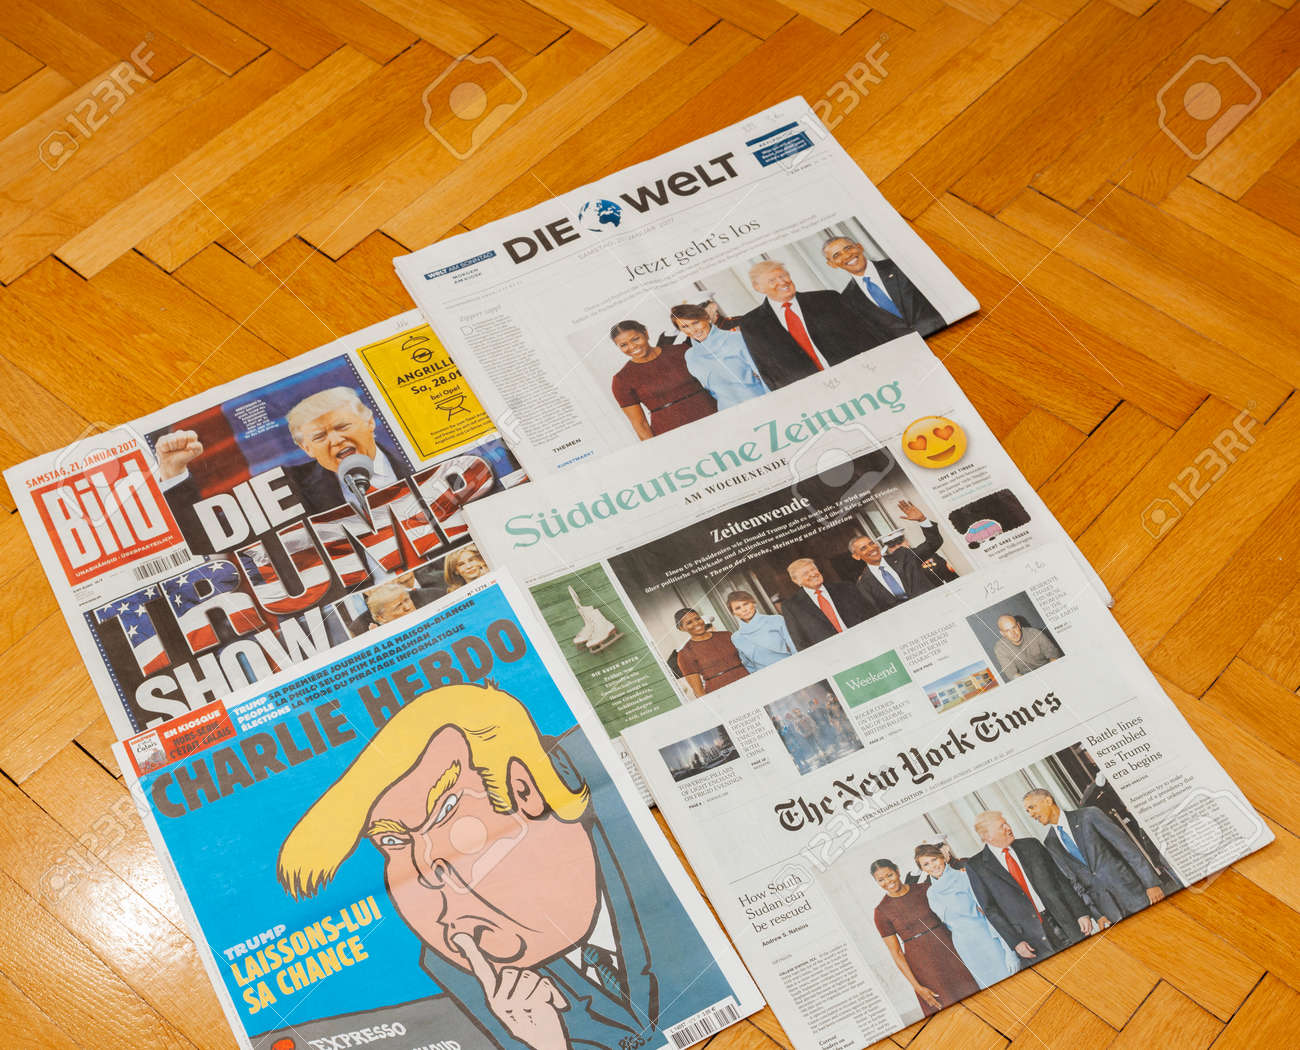 PARIS, FRANCE - JAN 21, 2017: Major international newspaper journalism